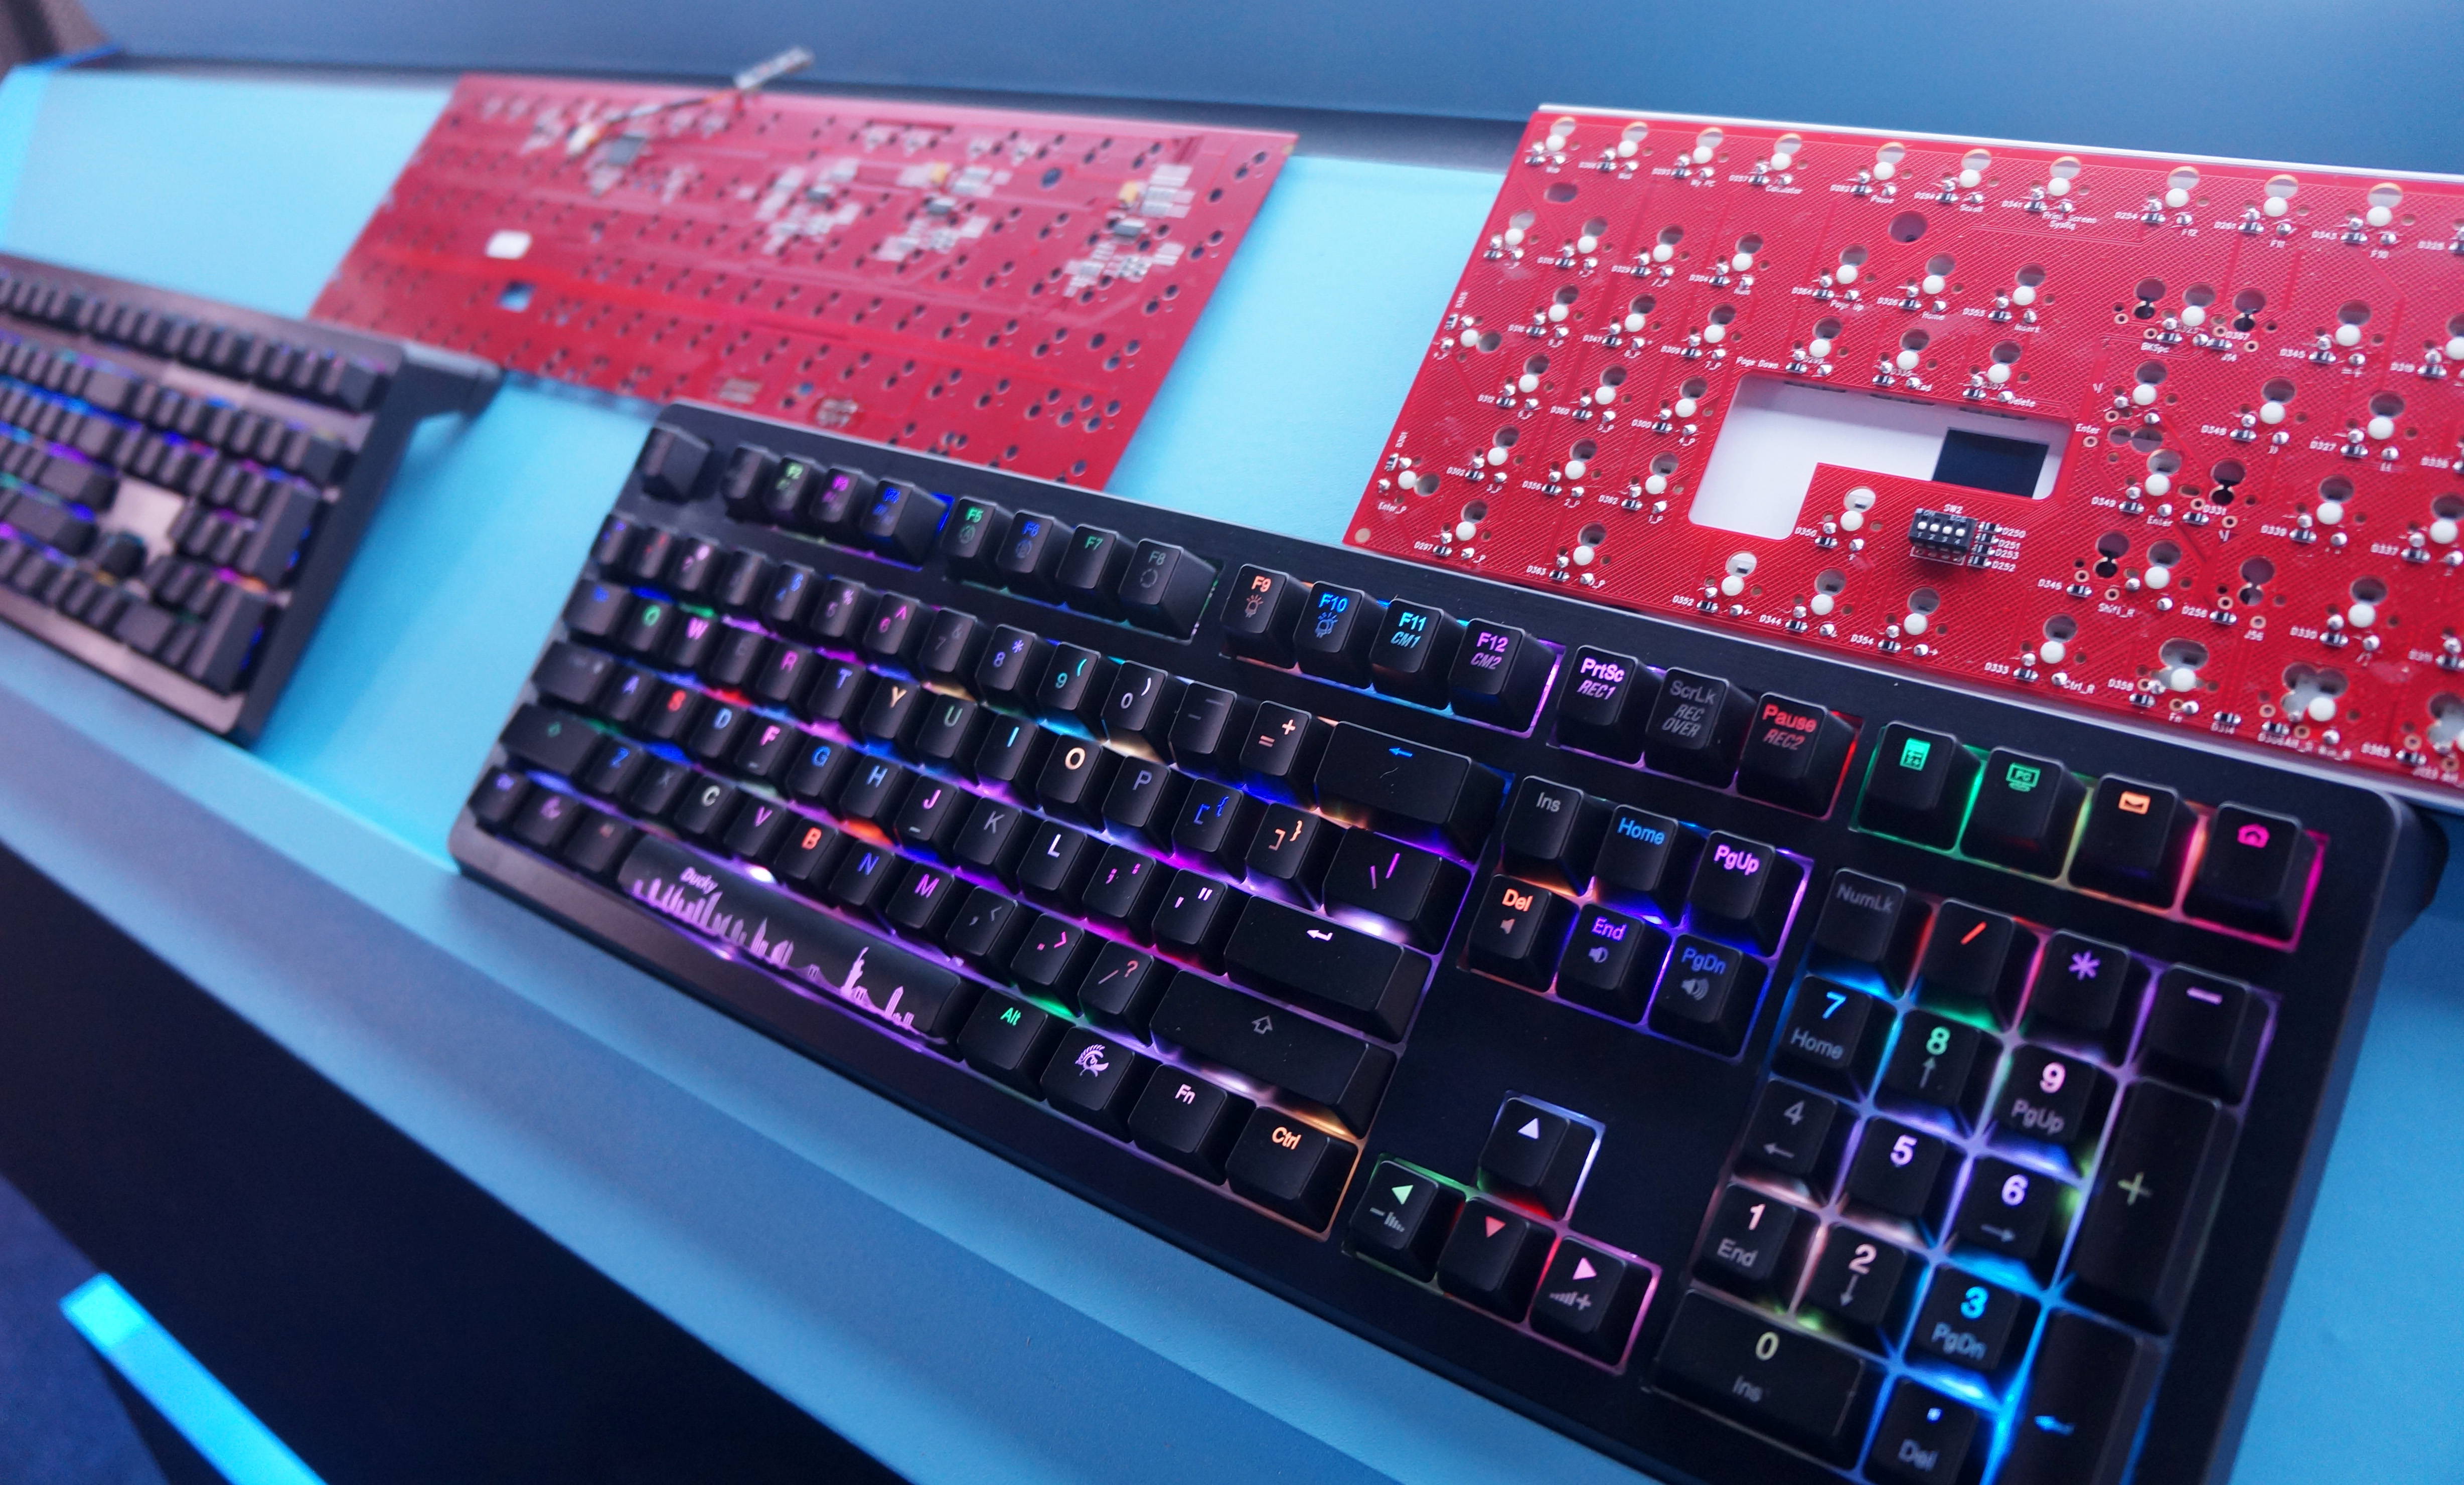 Hands-on: Ducky Shine 5 RGB keyboard and gaming mouse | PC Gamer